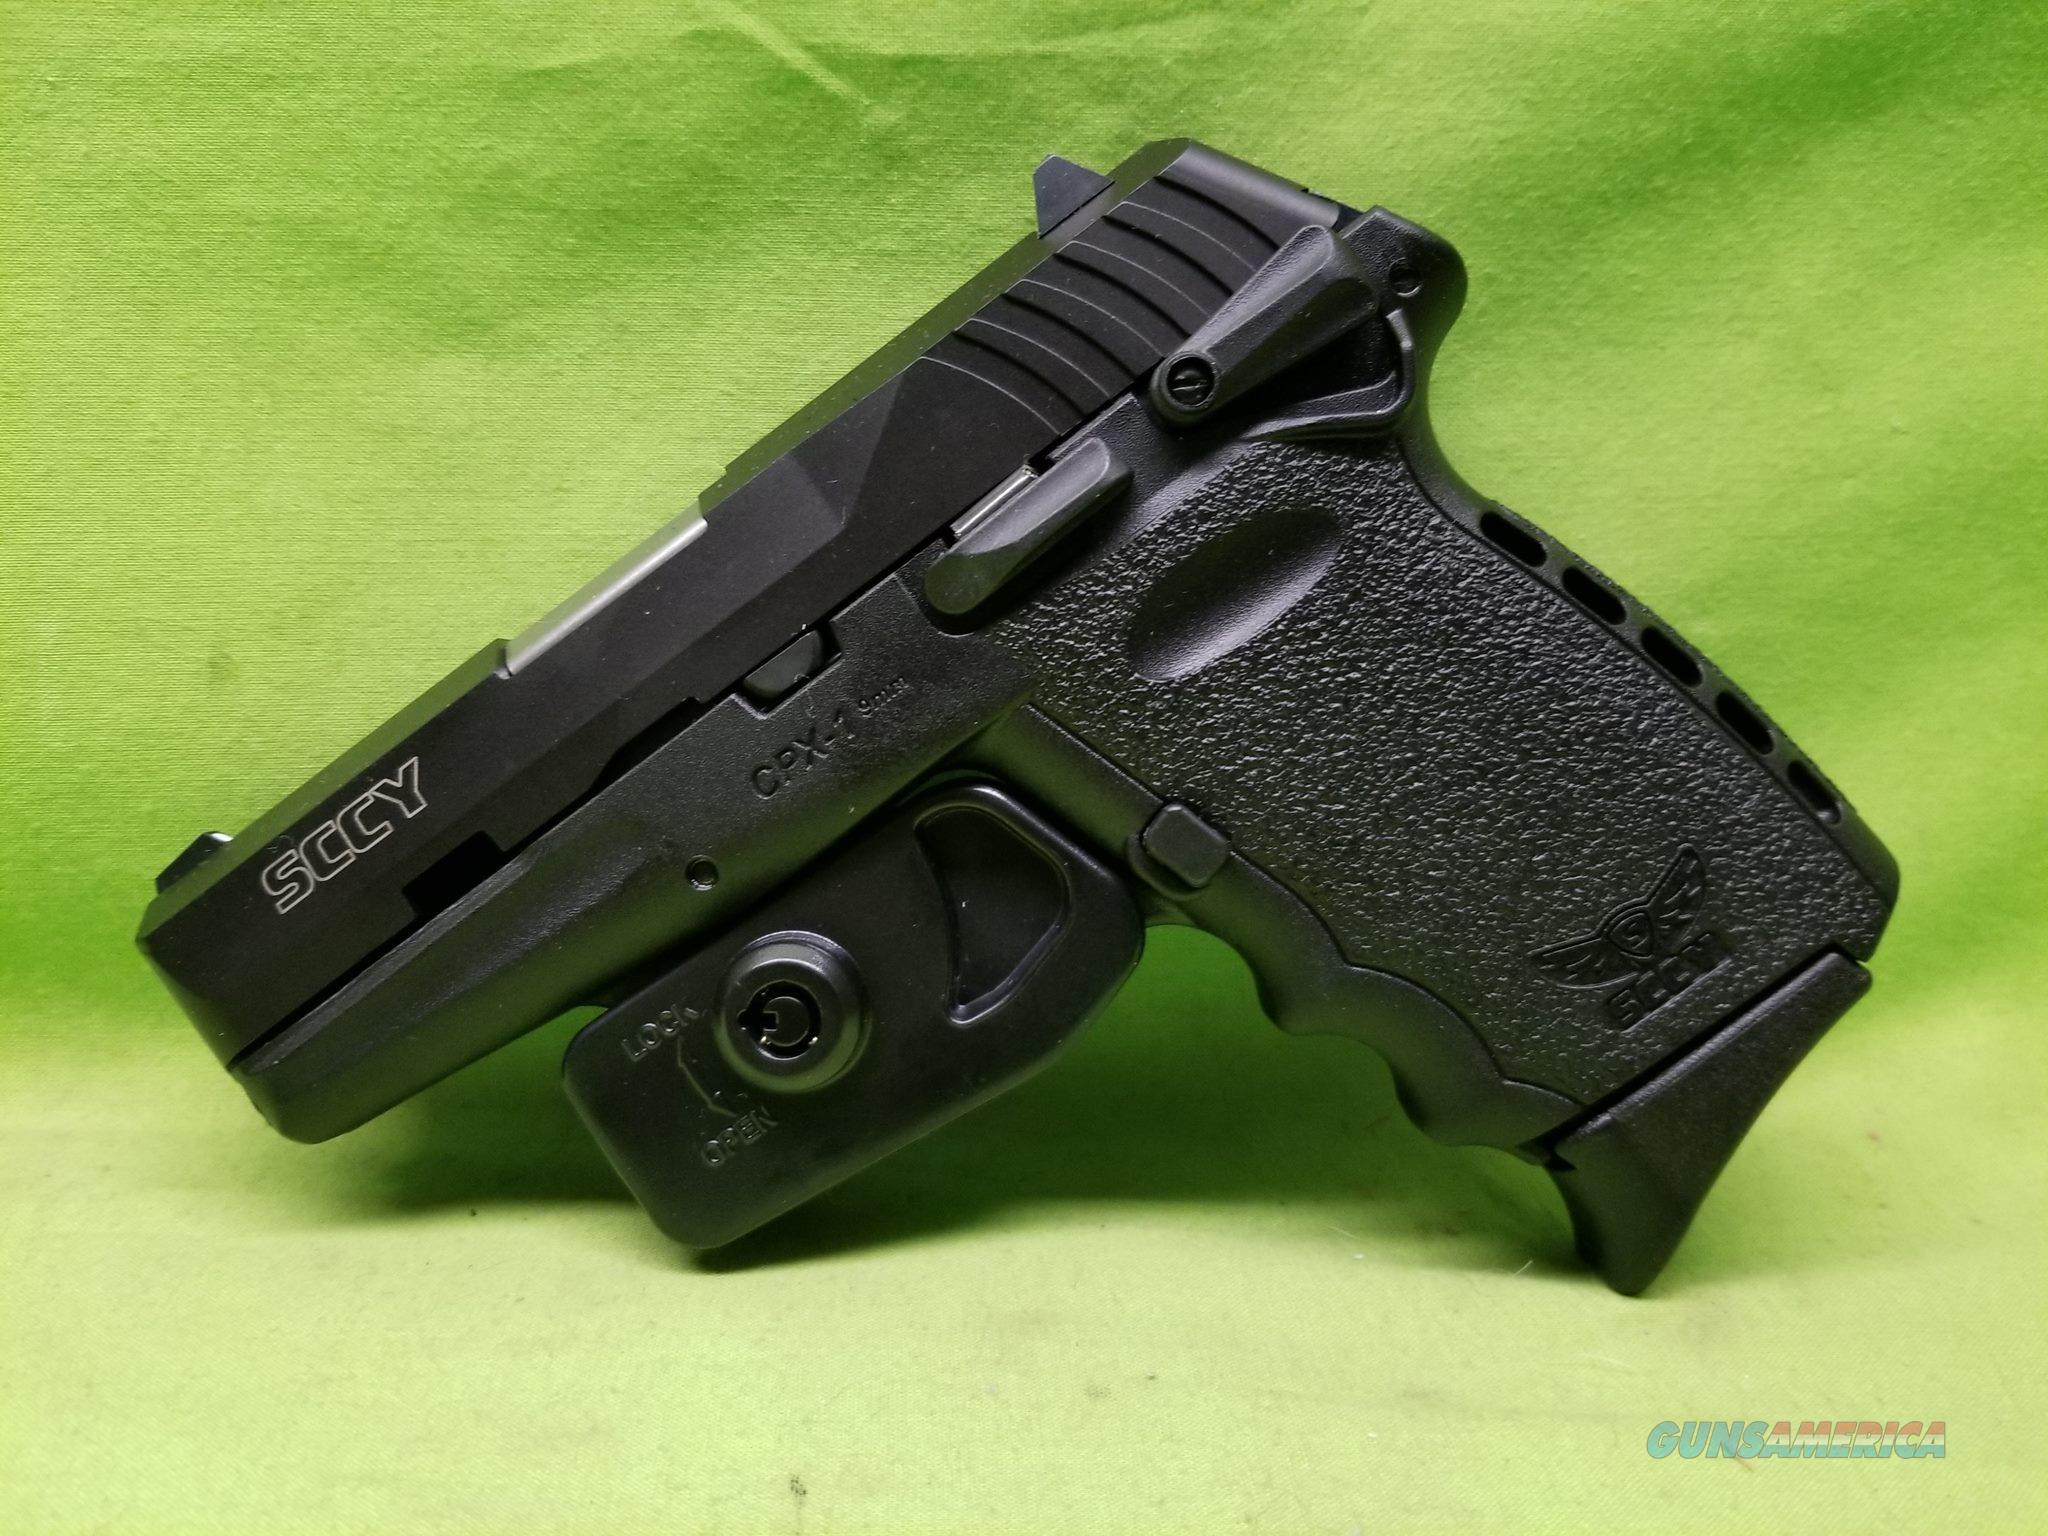 "SCCY CPX-1 CPX 1 CPX1 9 9MM 10RD BLK 3.1"" SAFETY  Guns > Pistols > SCCY Pistols > CPX1"